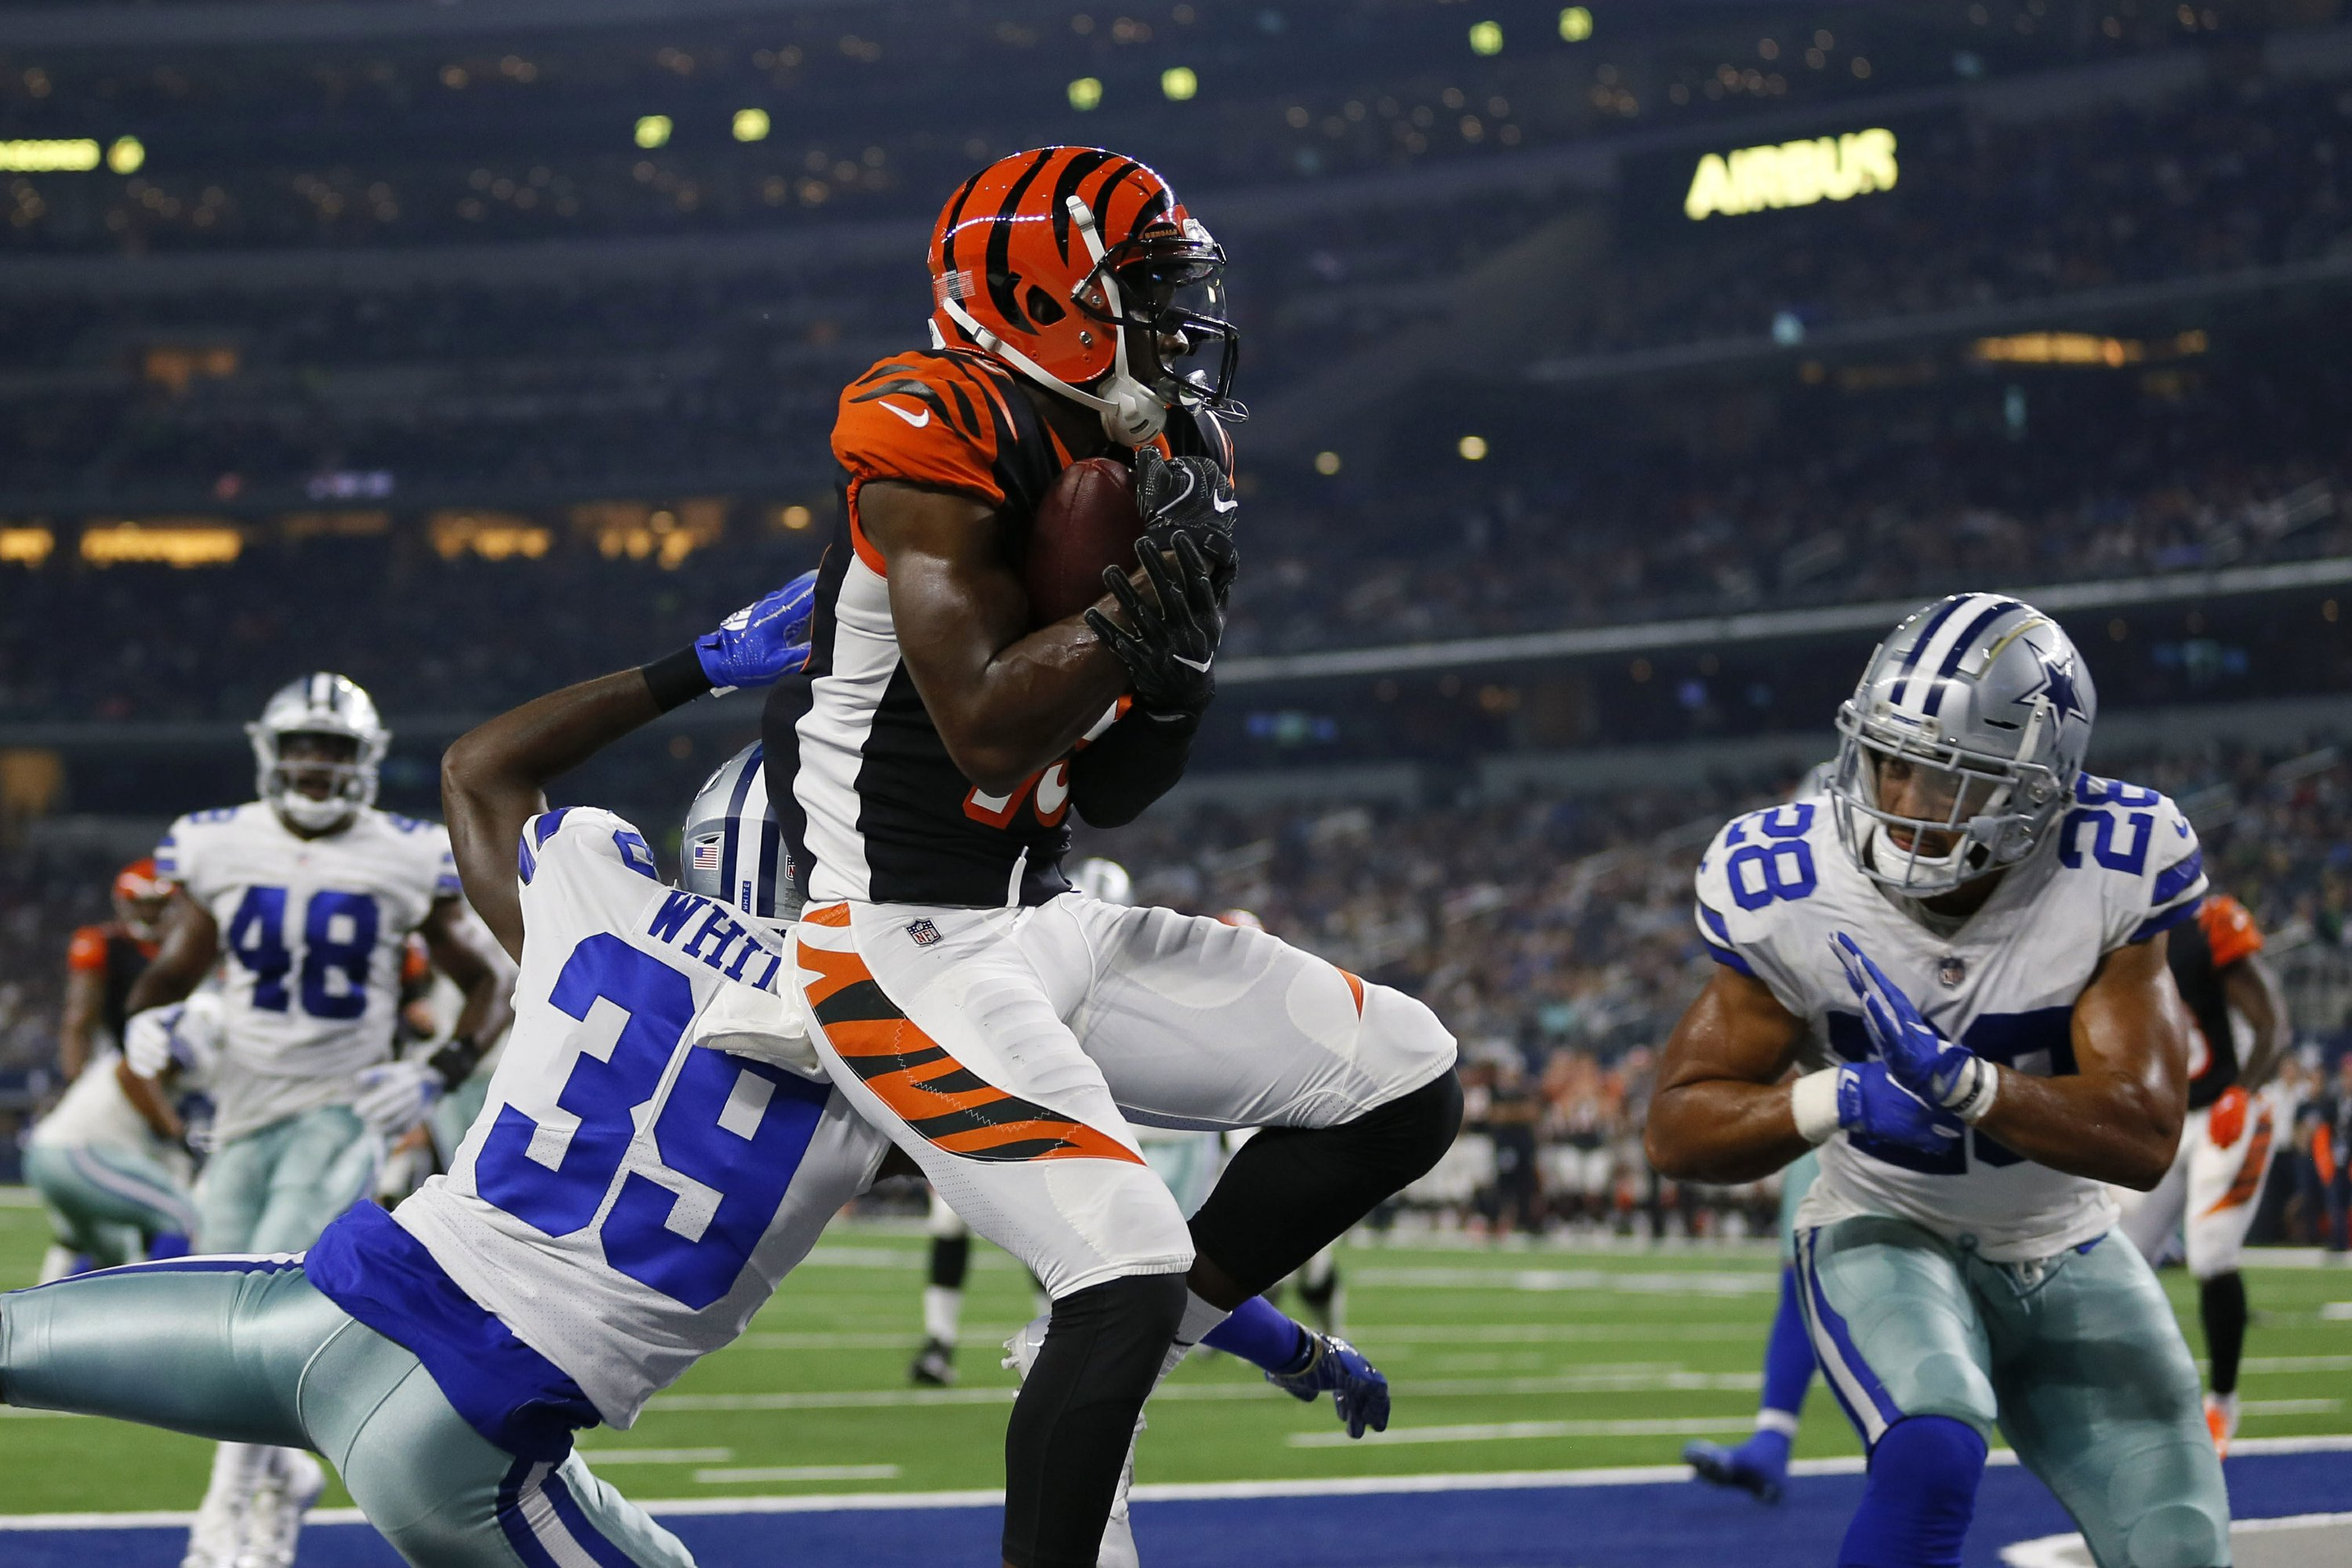 WR Ross returns from injury, giving Bengals a deep threat